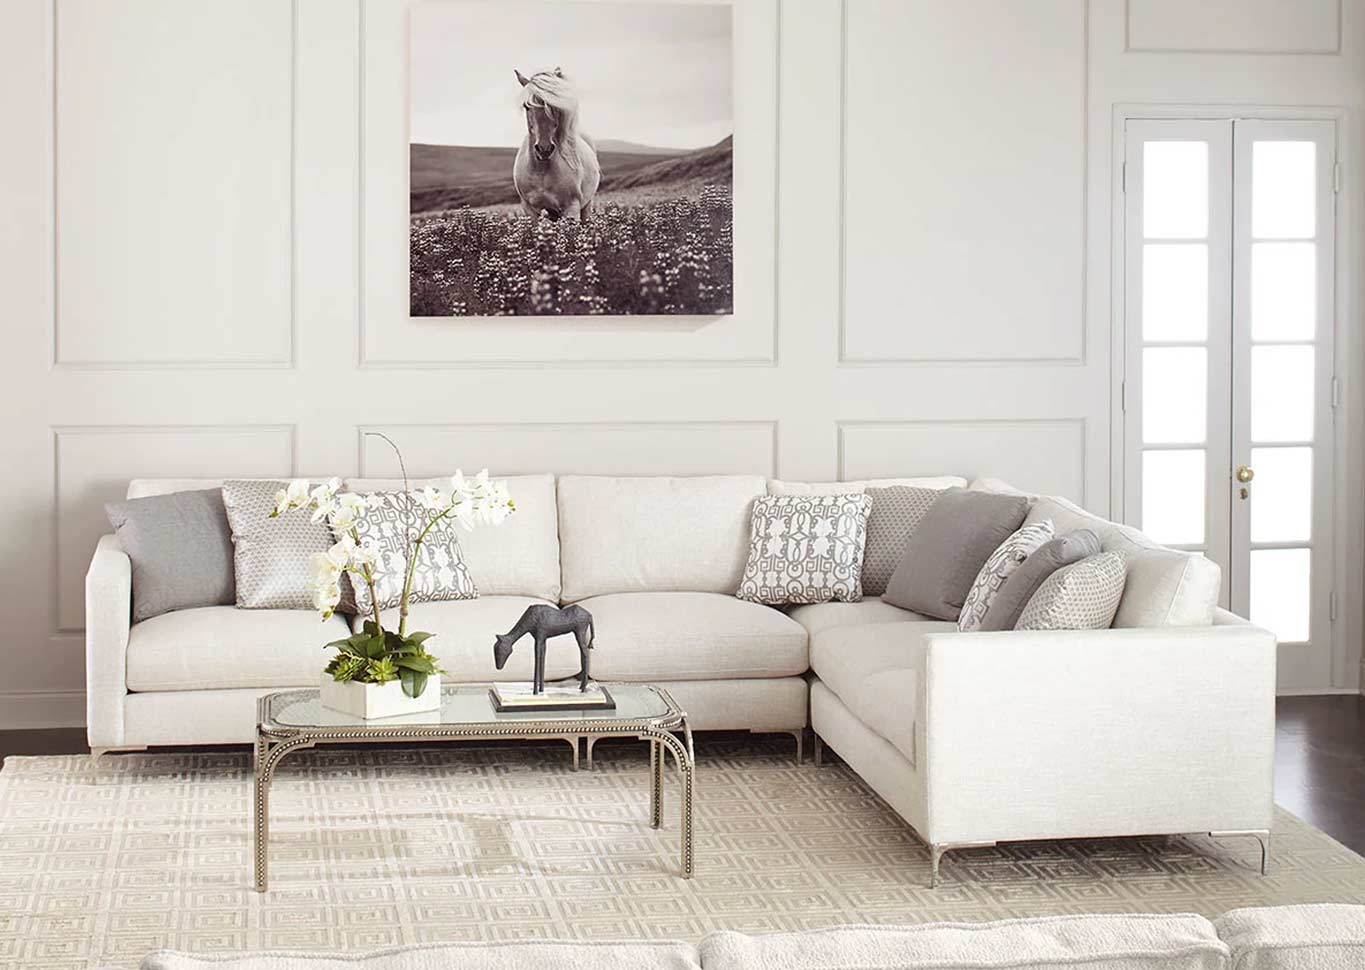 Best Sofa Brands: Your Guide for Sofas, Couches, & Sectionals | Soda ...